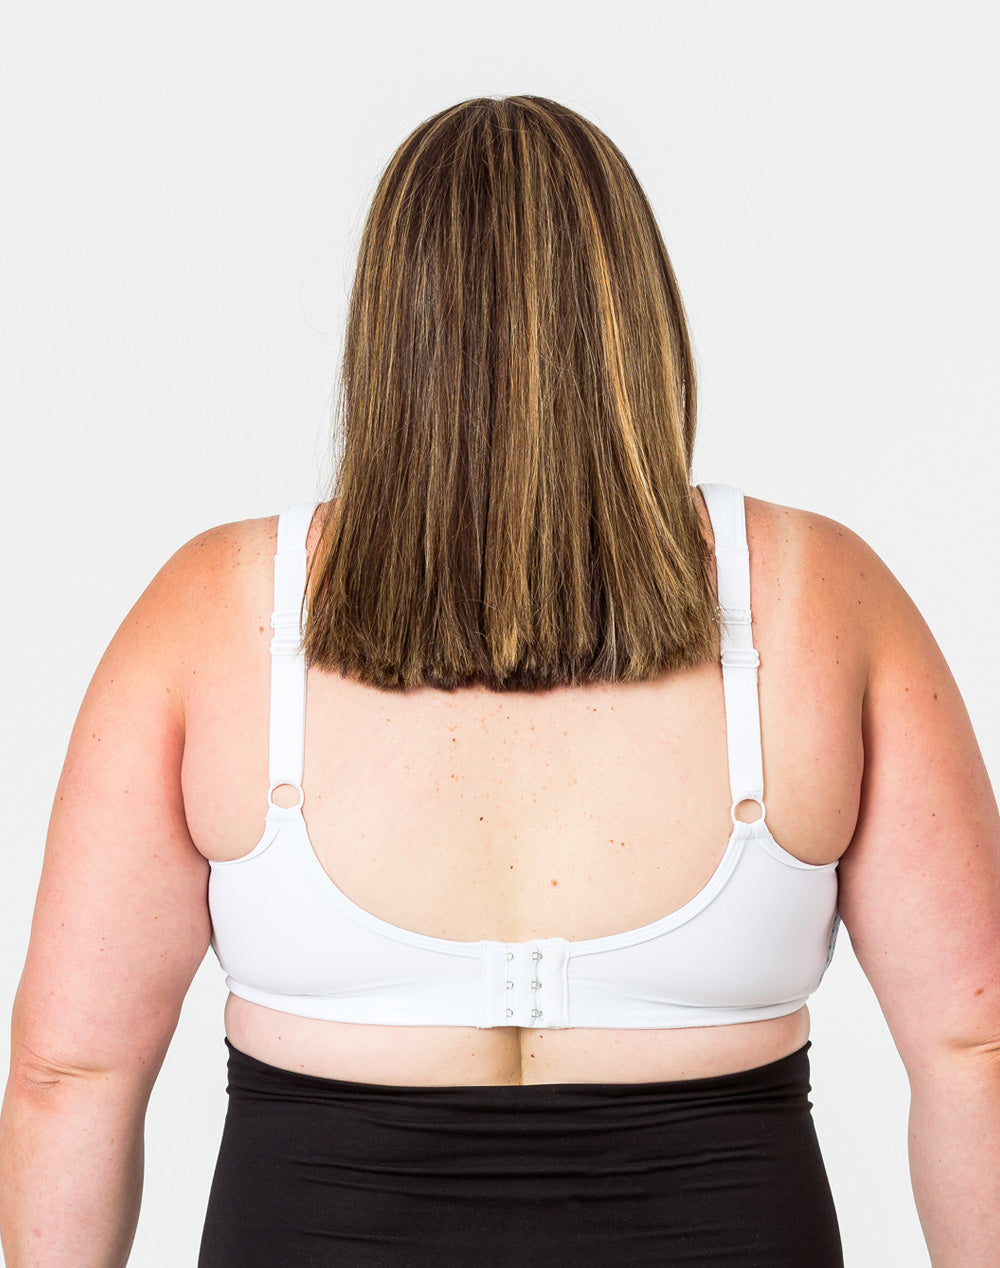 back view of a mum wearing a plus size nursing bra with thick bra straps to provide optimal support